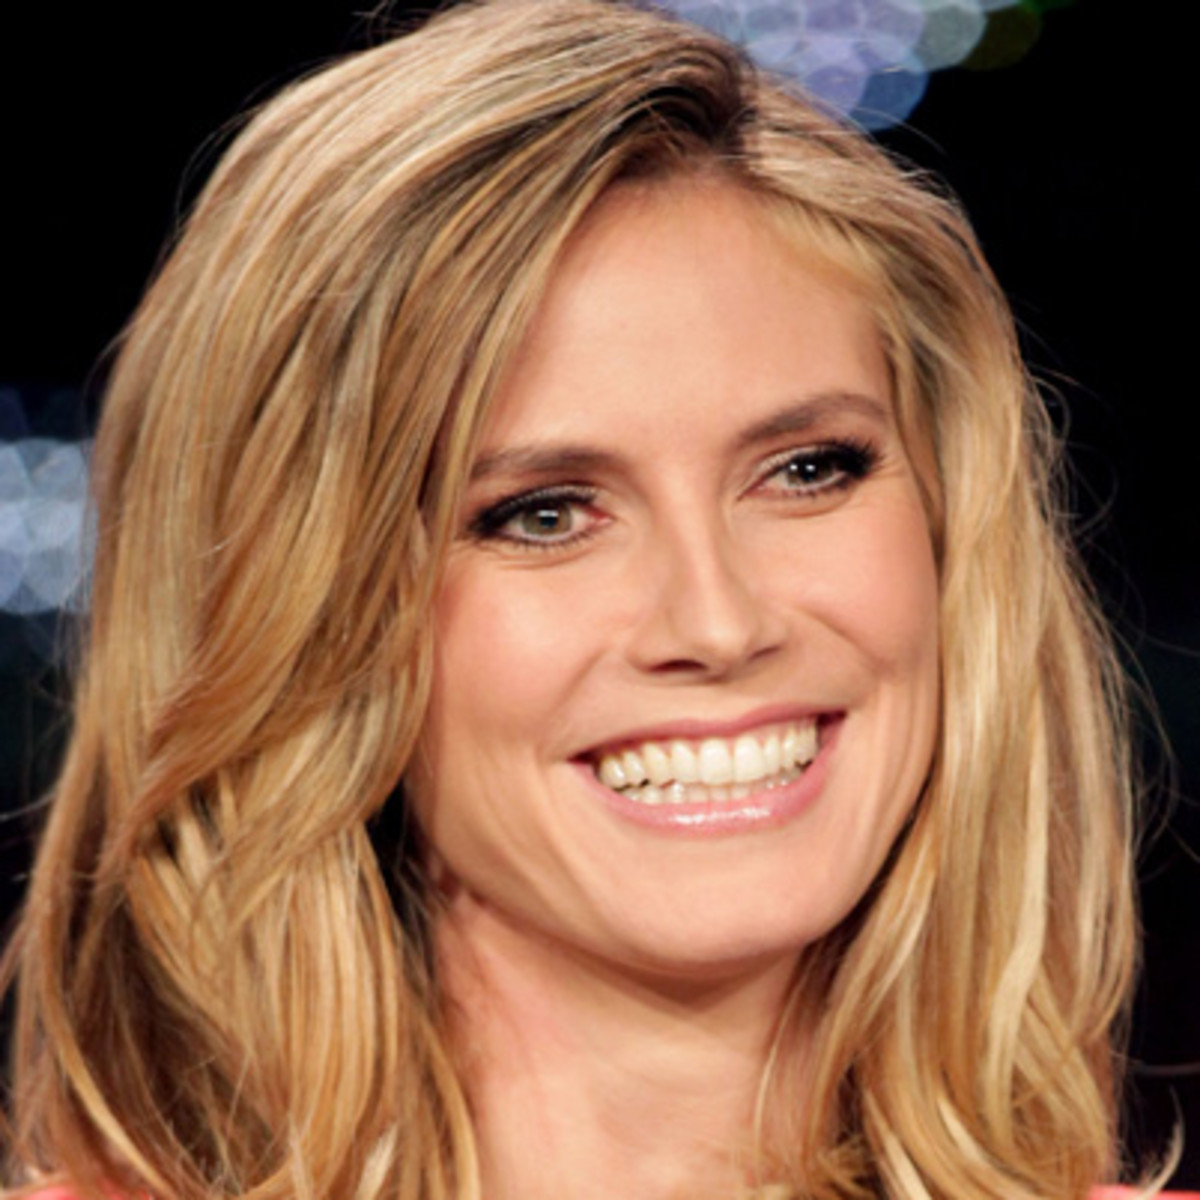 heidi klum model actress reality television star television heidi klum model actress reality television star television producer com